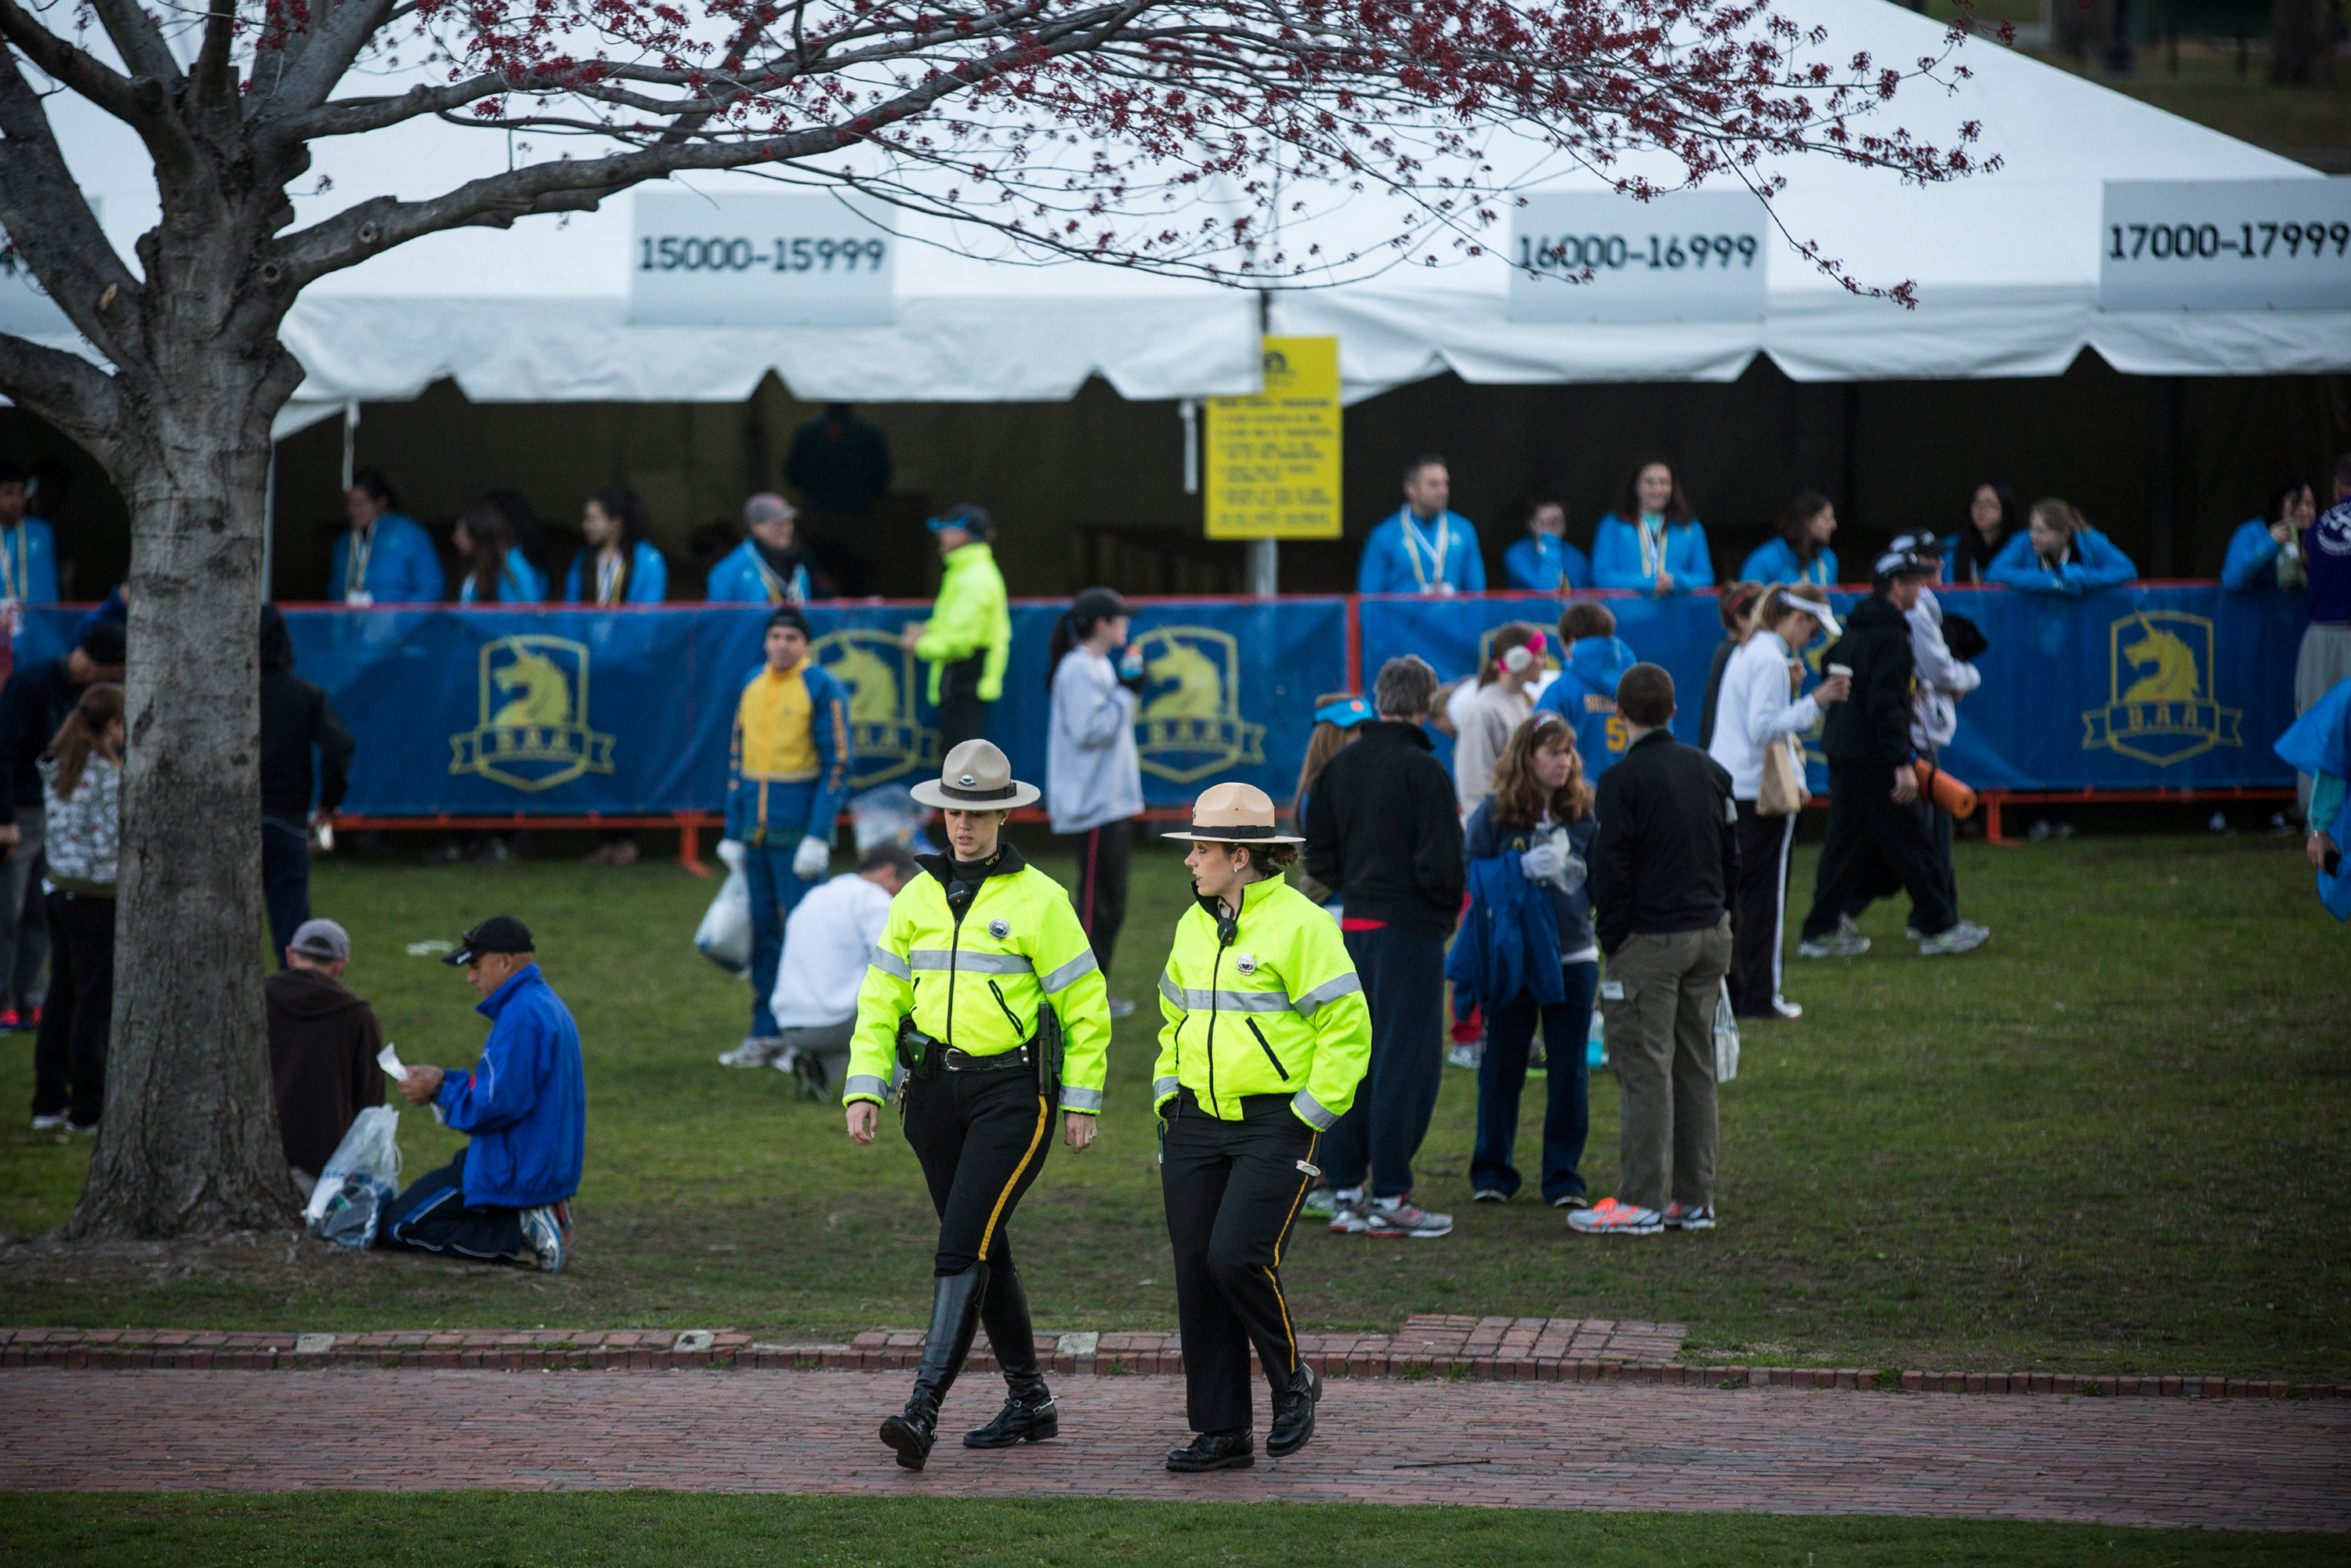 Police officers monitor the area as runners prepare for the marathon in Boston Common. A year after the terrorist bombings, a far greater security presence is clearly visible. (Photo by Andrew Burton/Getty Images)